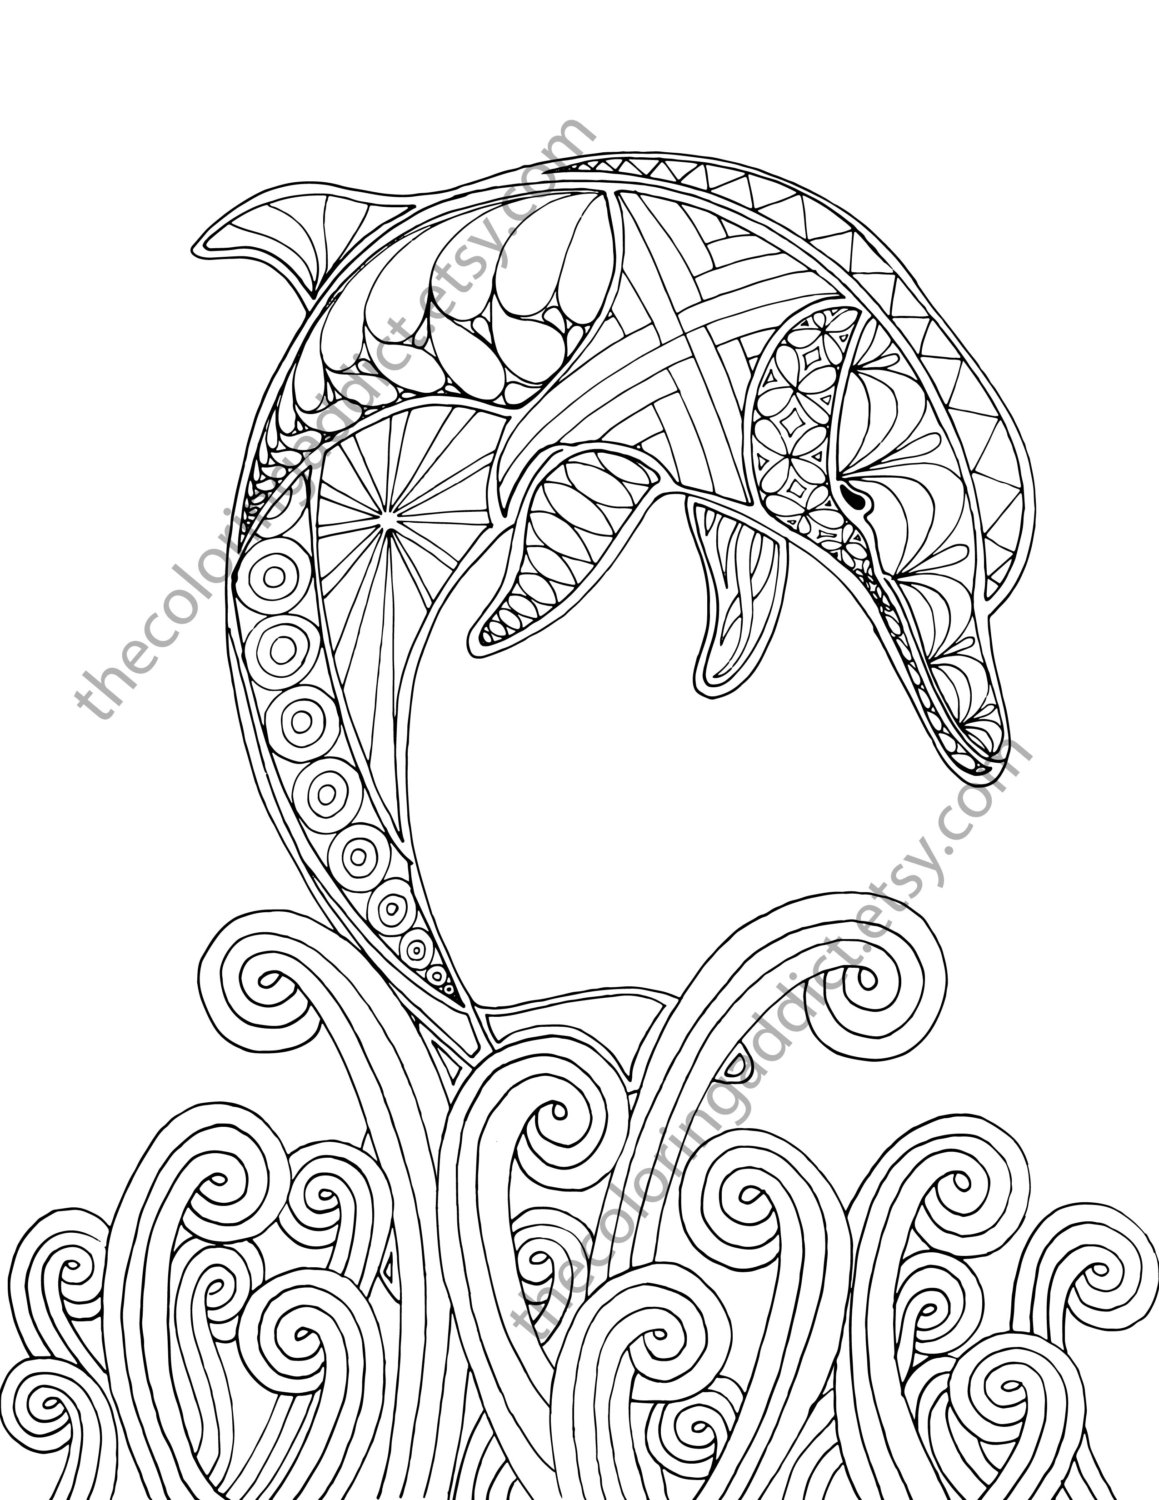 dolphin coloring pages free printable dolphin coloring pages download and print for free coloring printable pages free dolphin